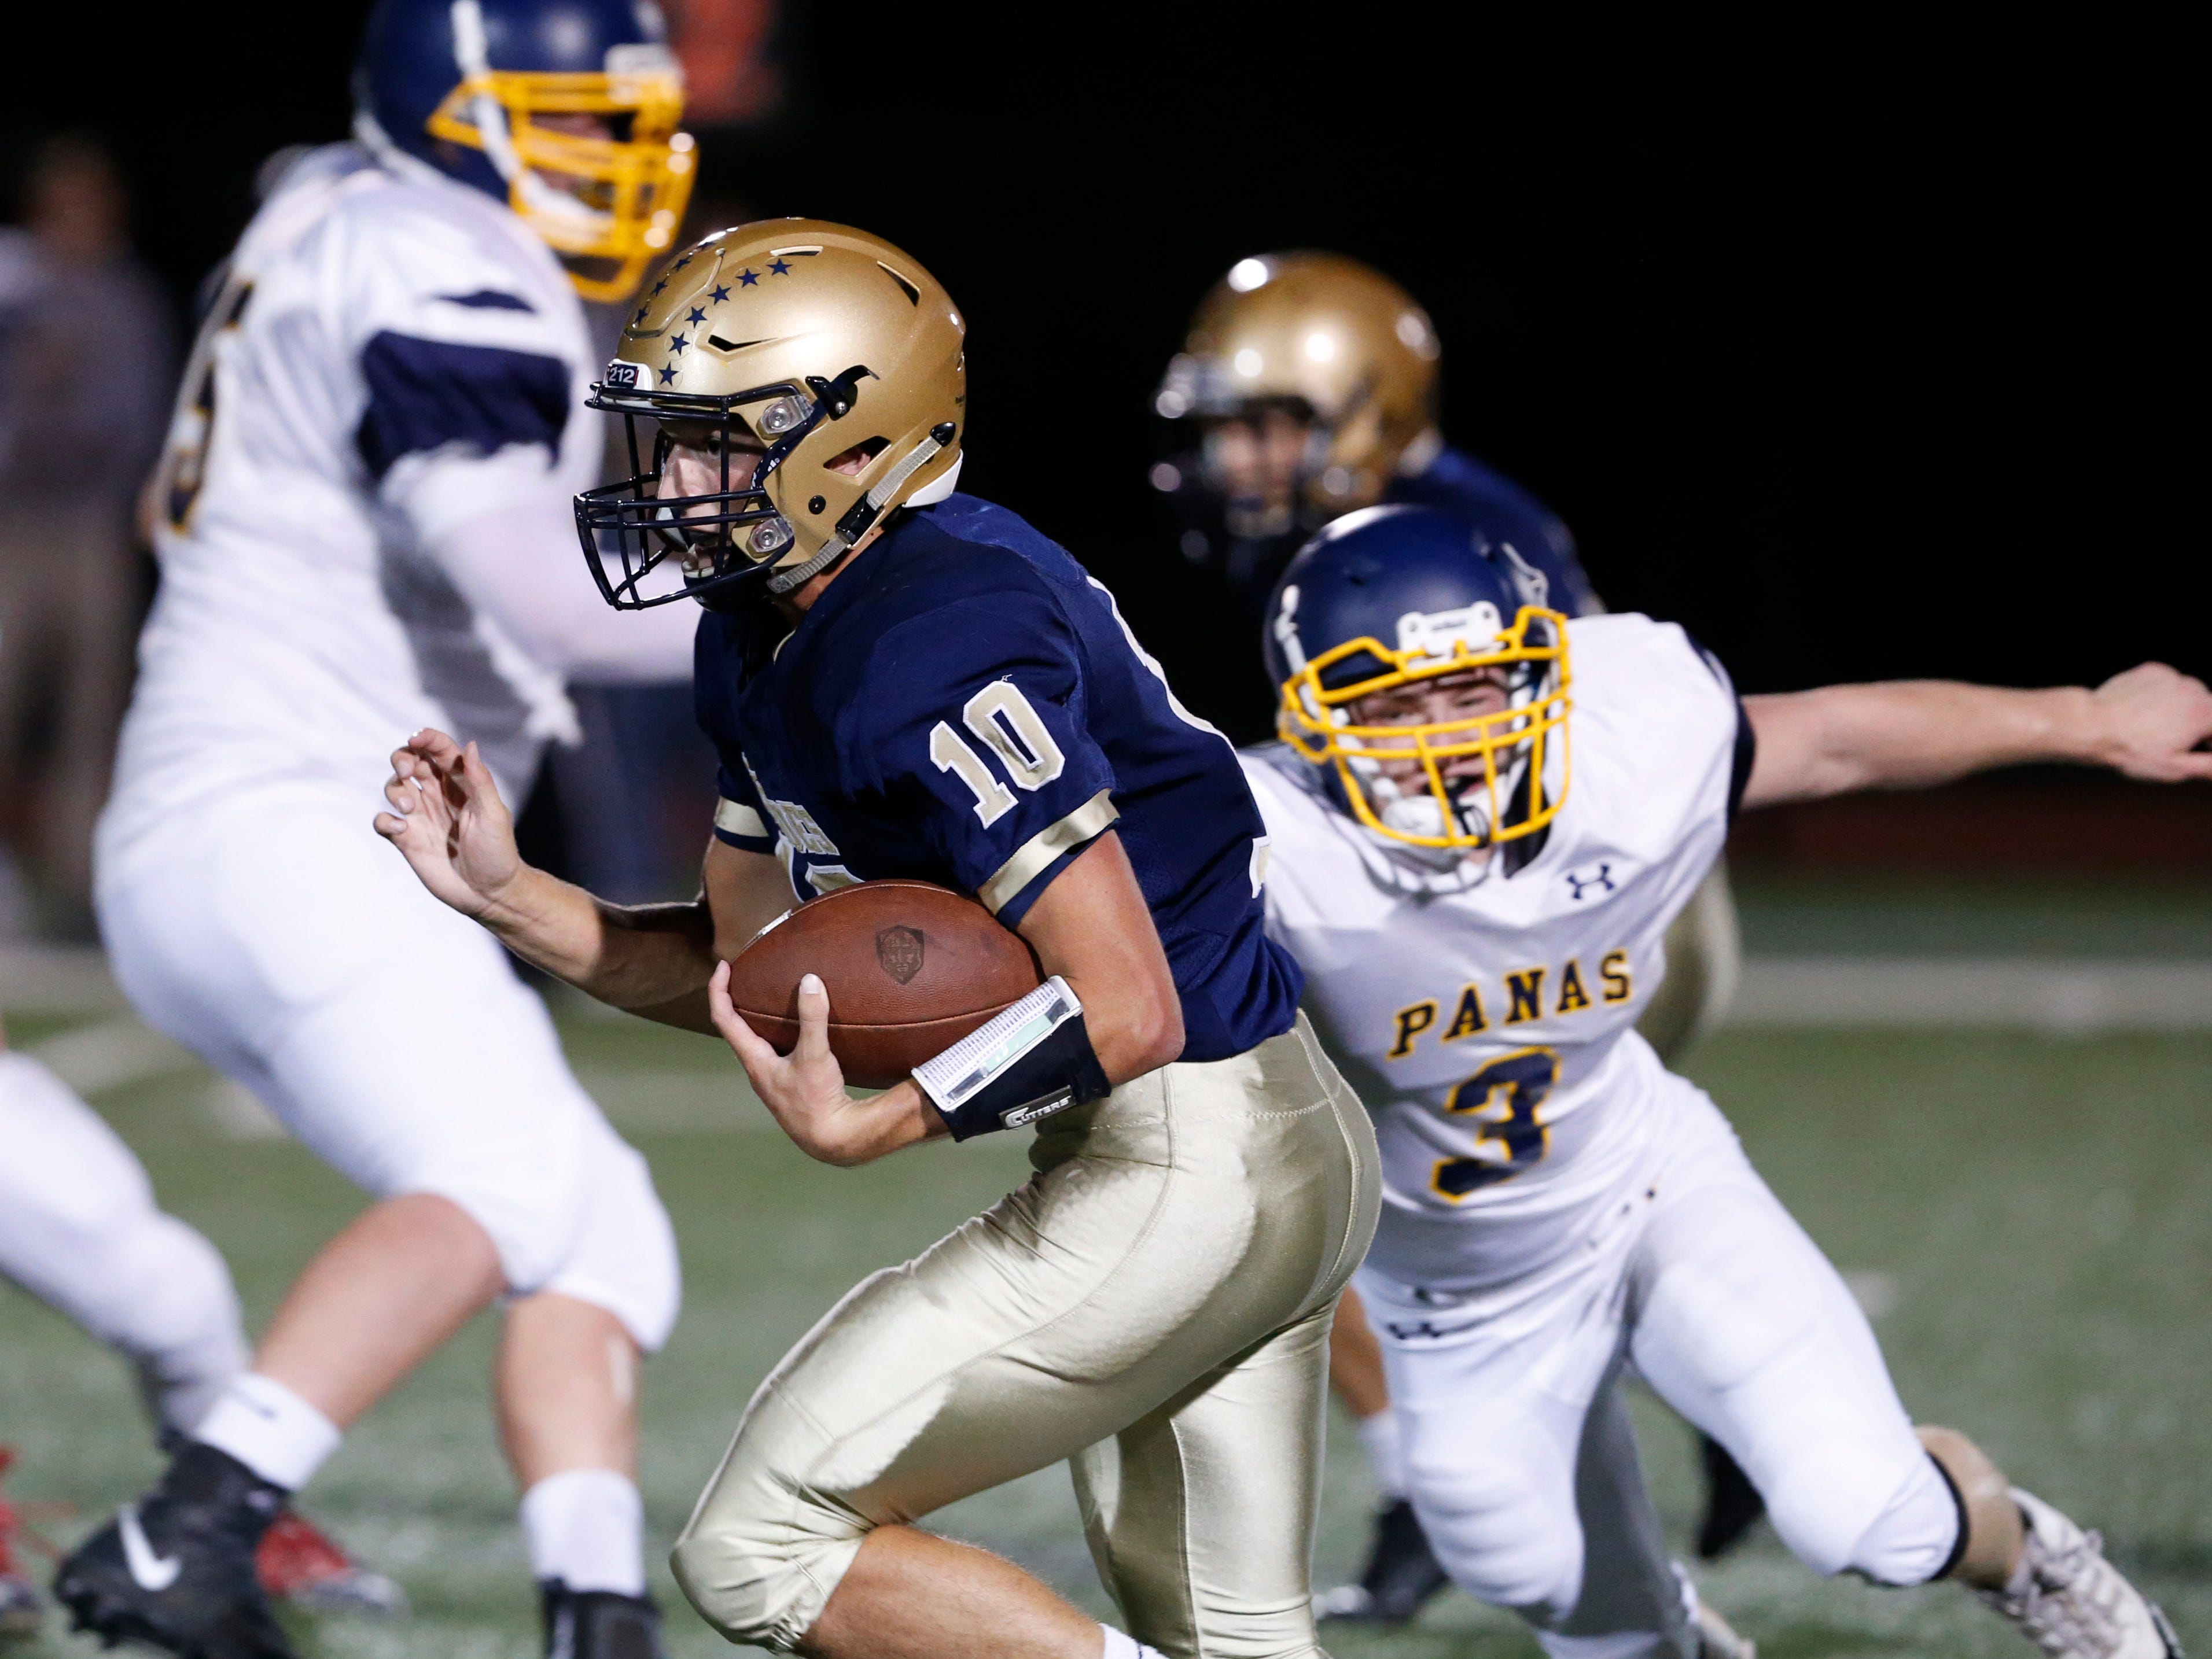 Lourdes' Max Kras breaks free for a run against the Walter Panas defense during a Sept. 21 game.